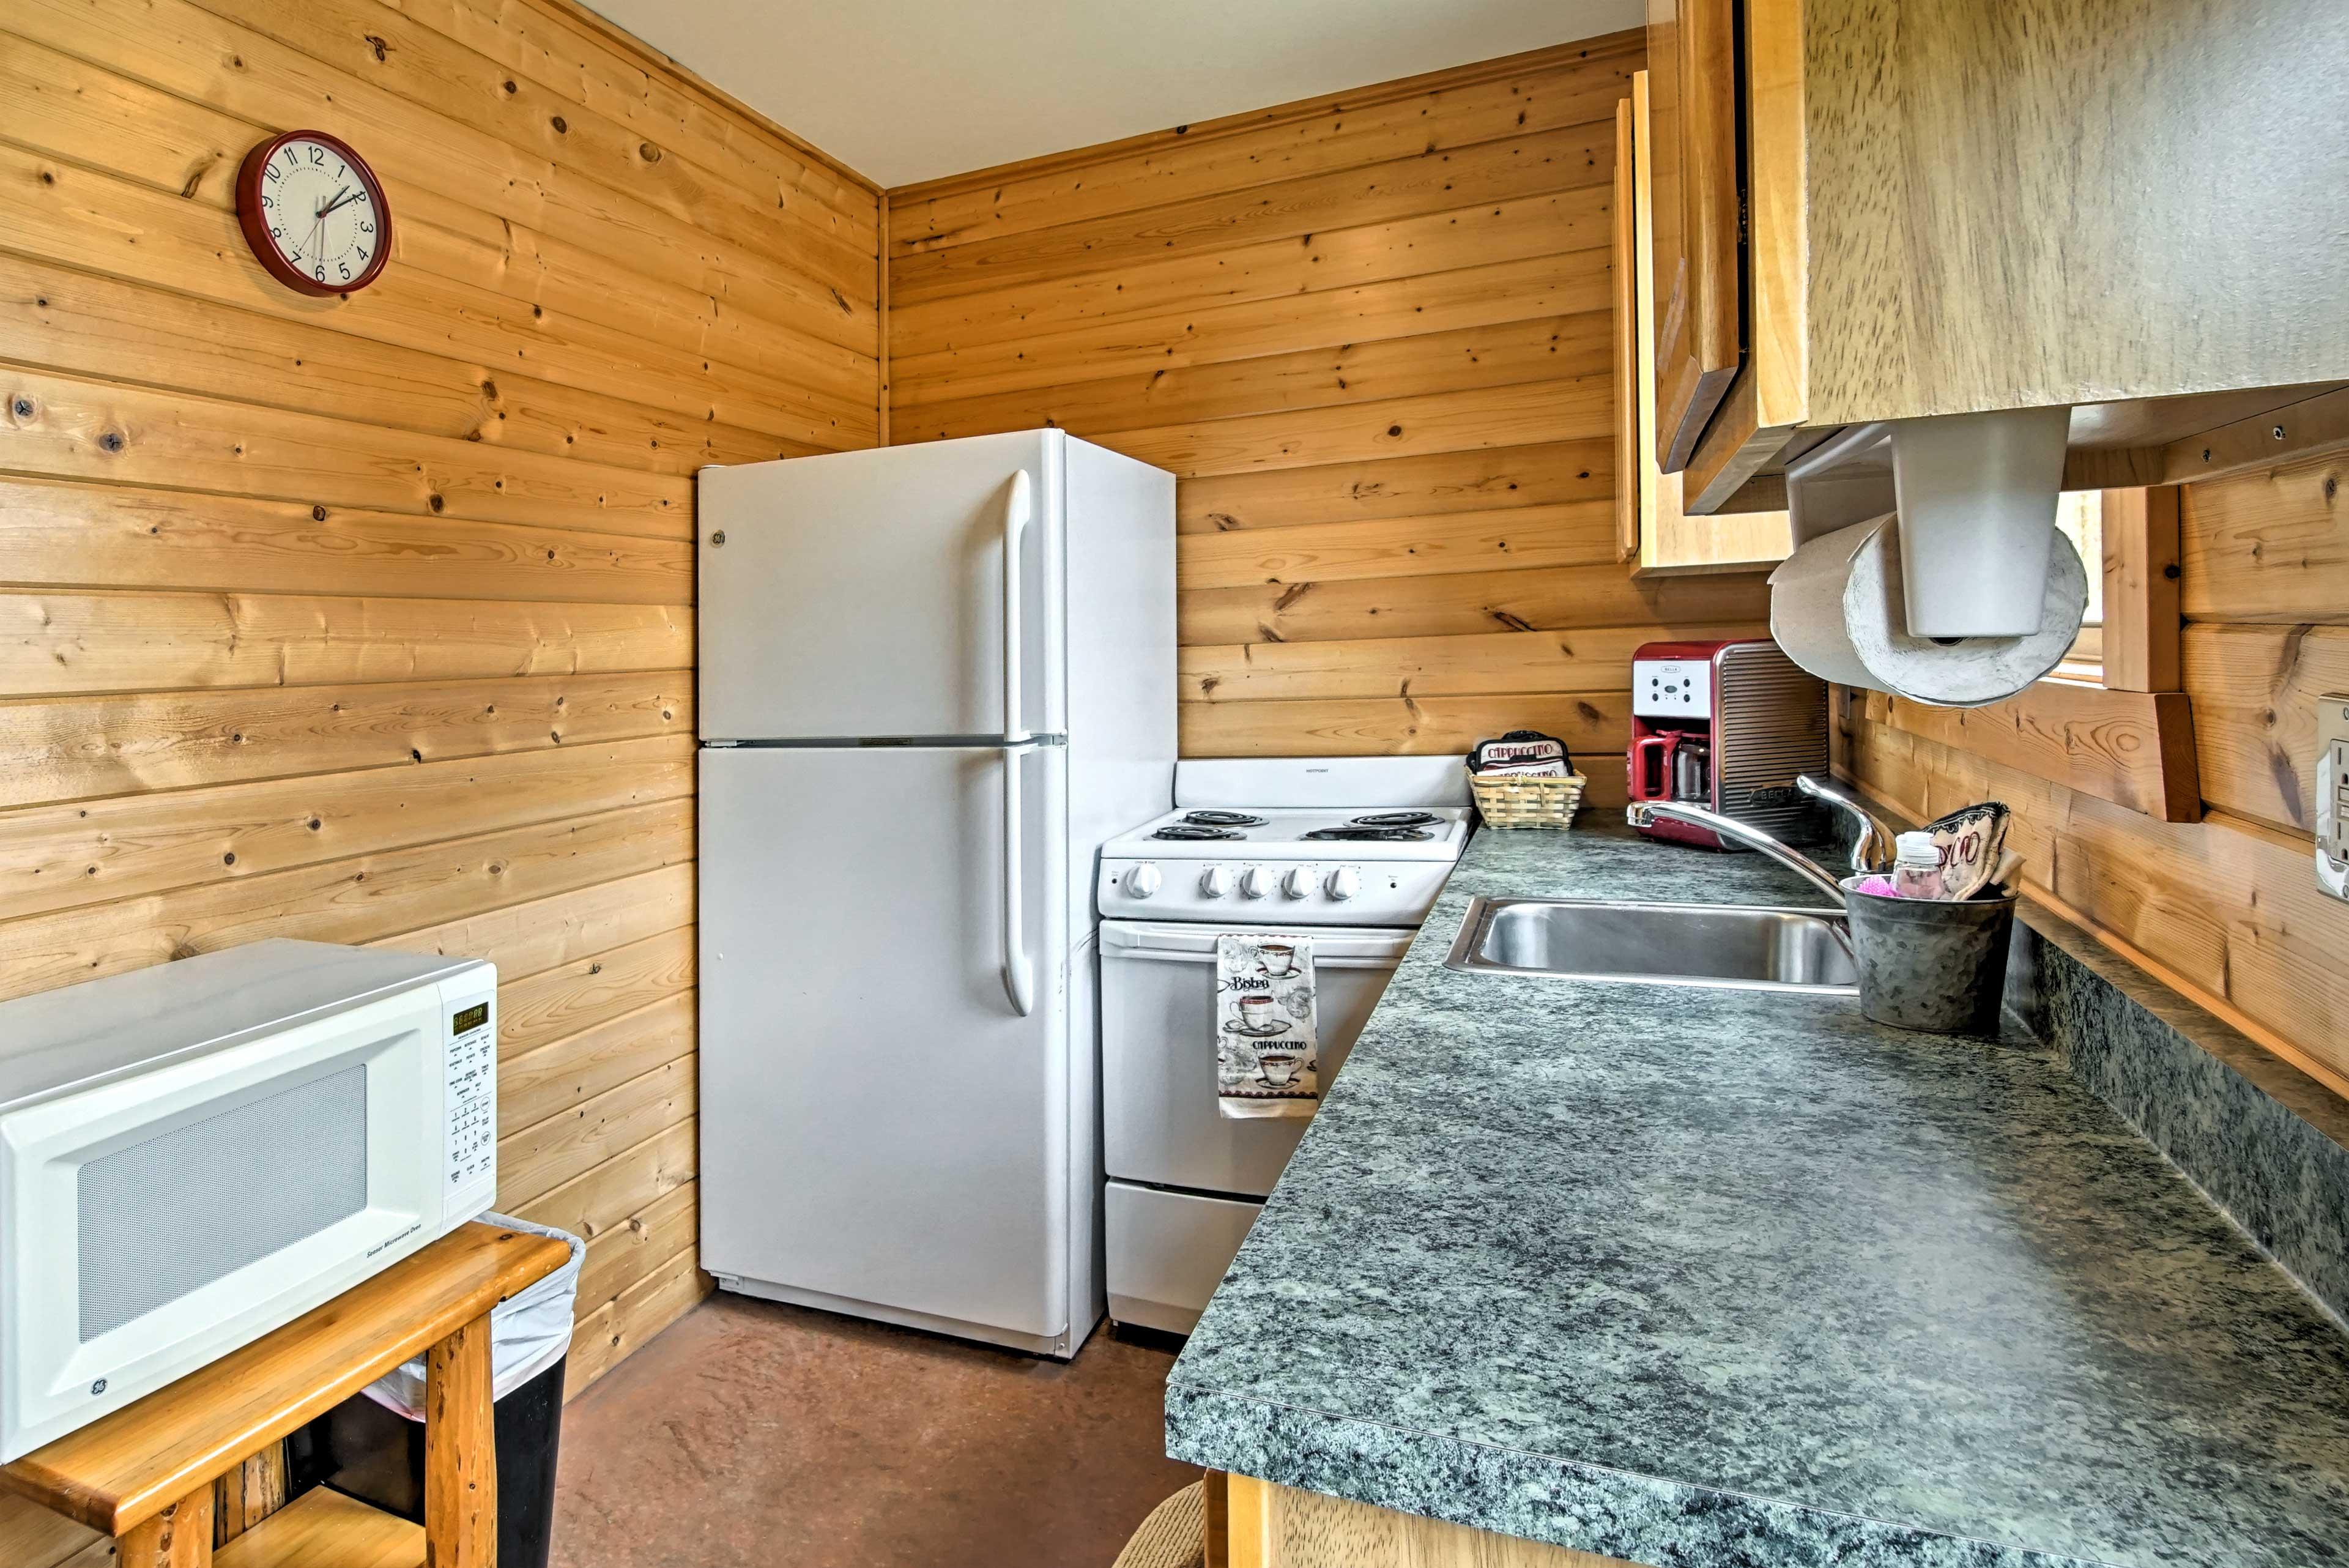 Prepare your favorite home-cooked meals in the well-equipped galley kitchen.